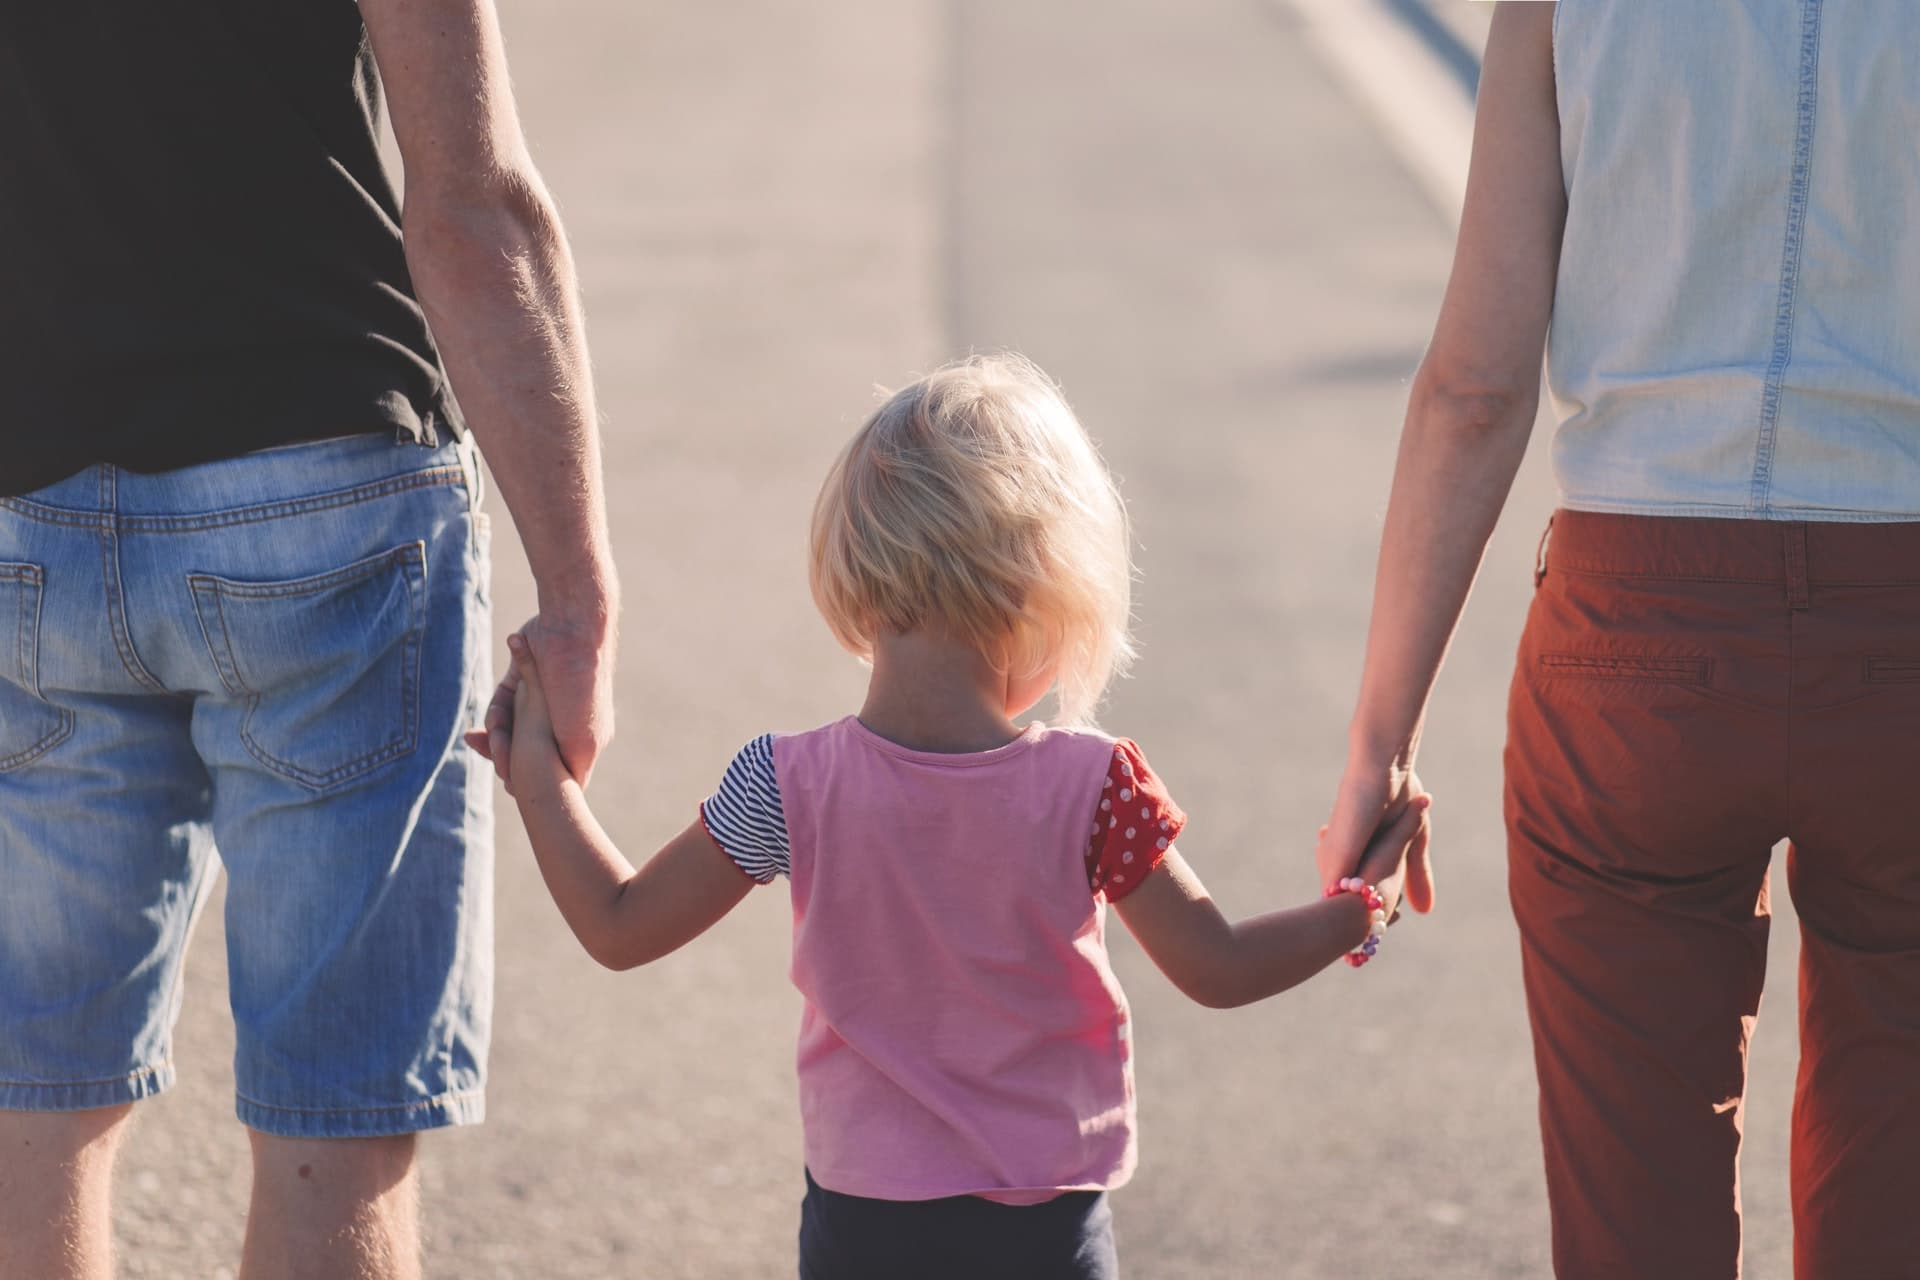 Protect what matters - you and your family